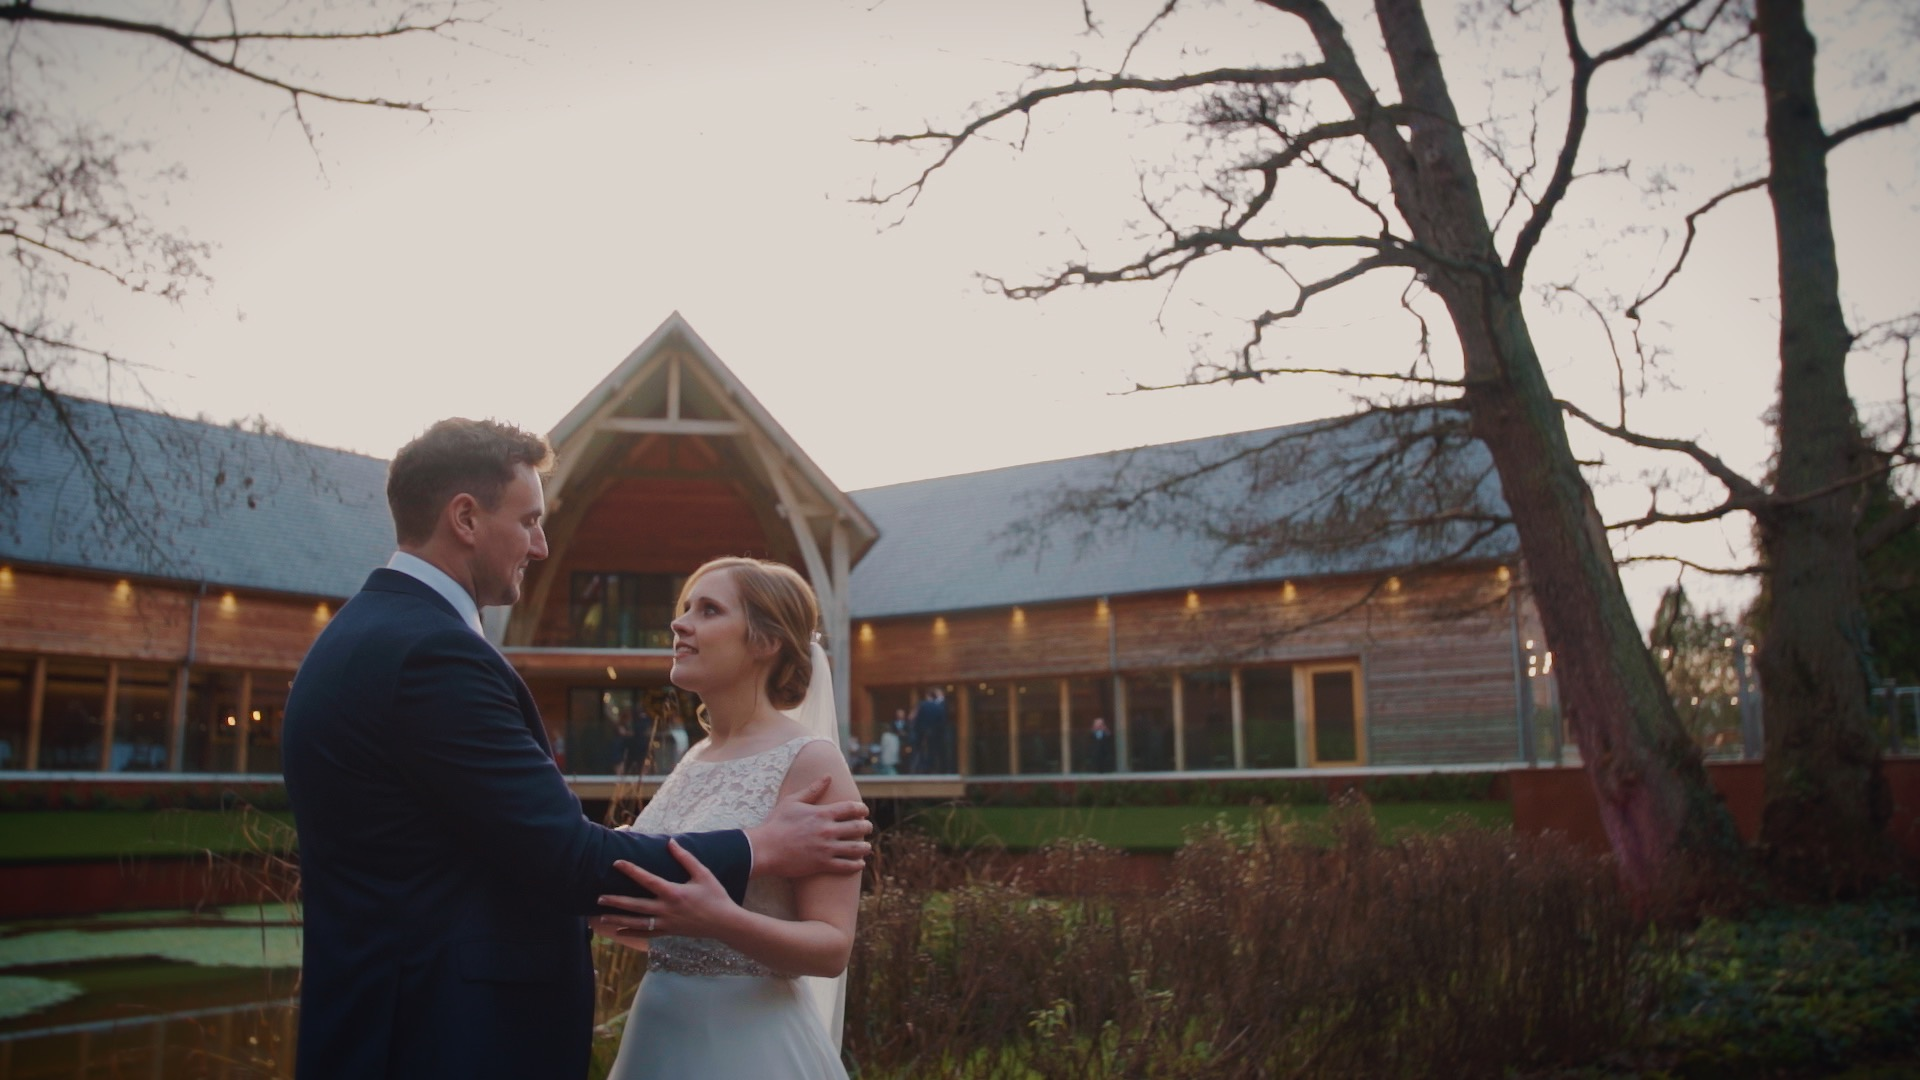 """Claire & Kev - """"Omg Stuart!! We have just watched the video. It is absolutely amazing!!! We love it so much and are both in tears!! Thank you!! You are very talented…Thank you. It's better than I could have ever imagined! You've captured the day beautifully."""""""